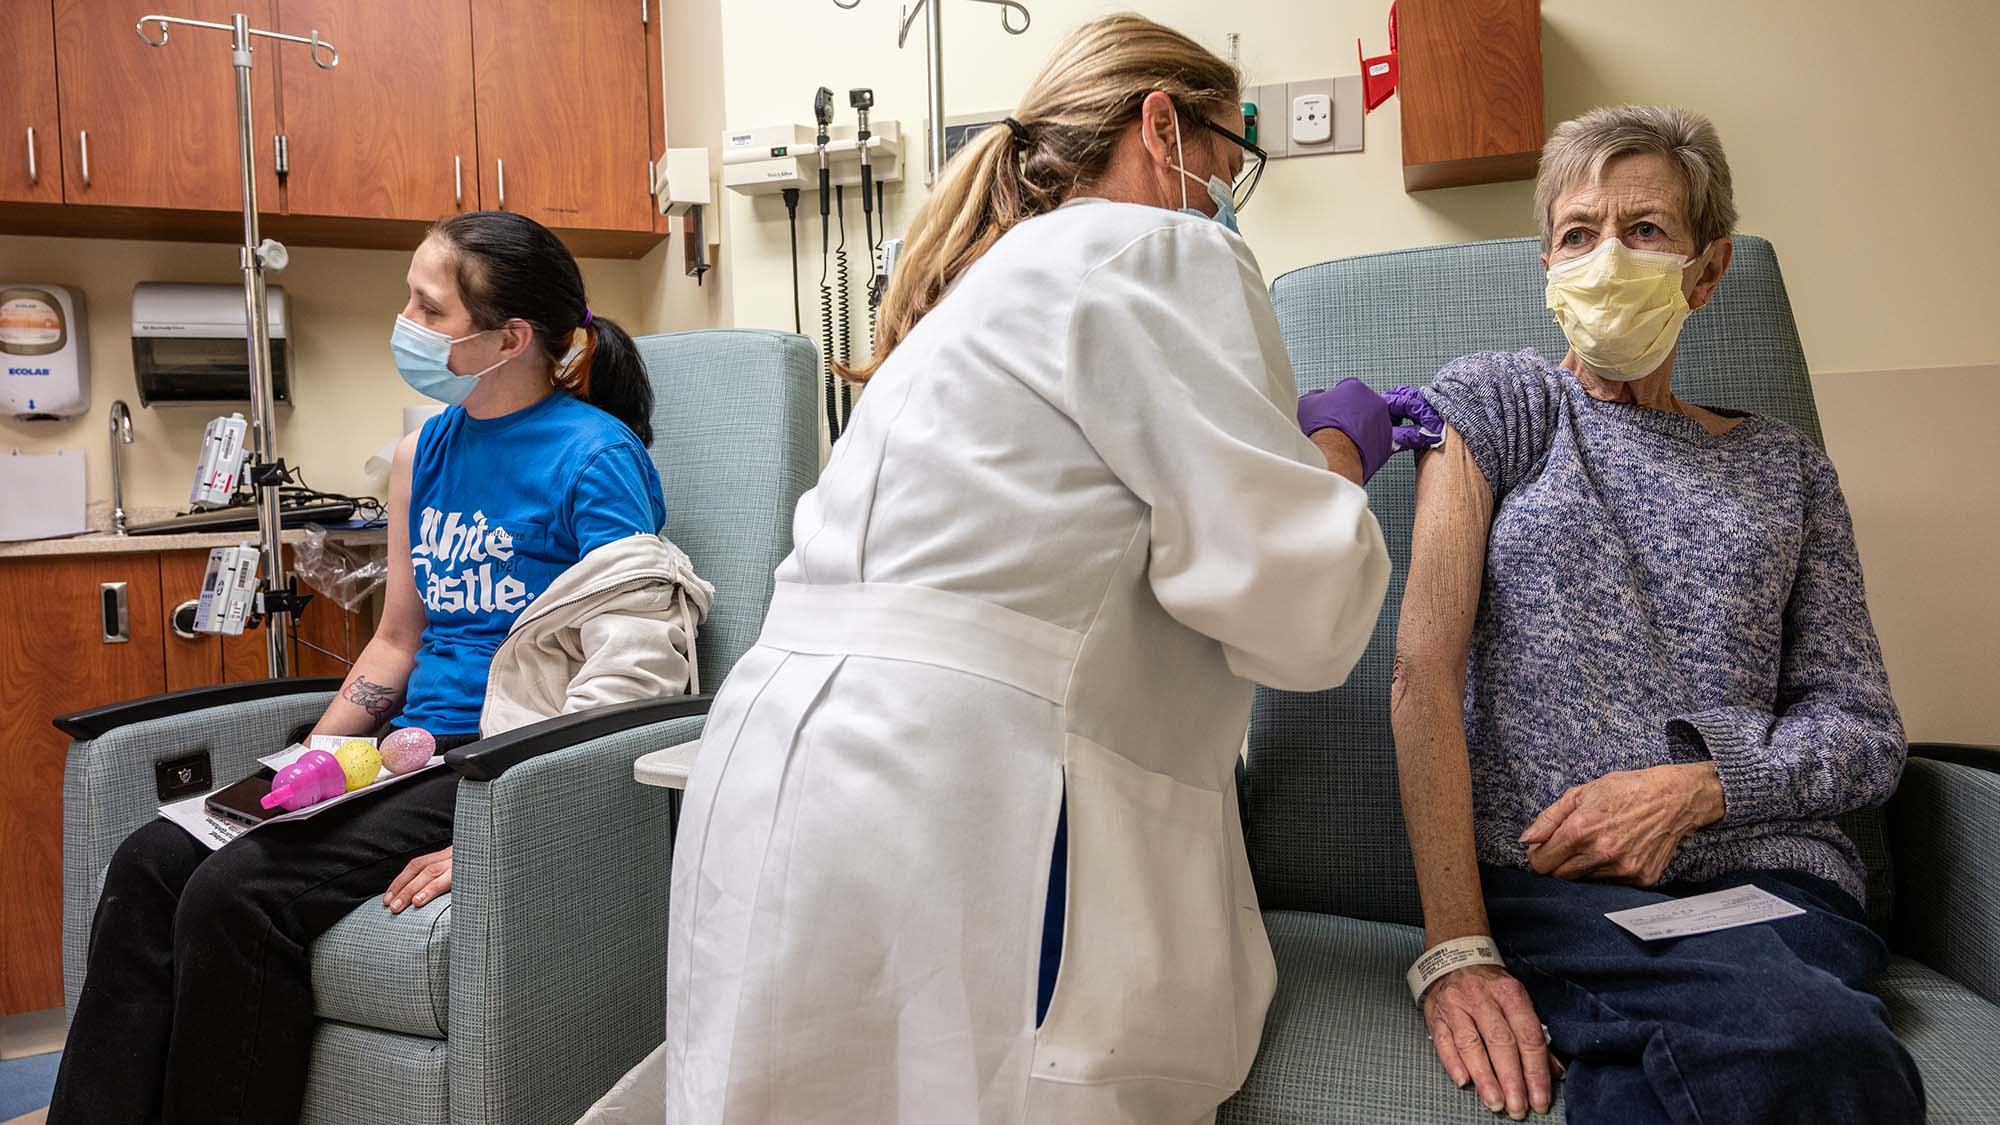 A cancer patient receives her COVID-19 vaccine in an oncology unit at the James Graham Brown Cancer Center on April 2, in Louisville, Kentucky.